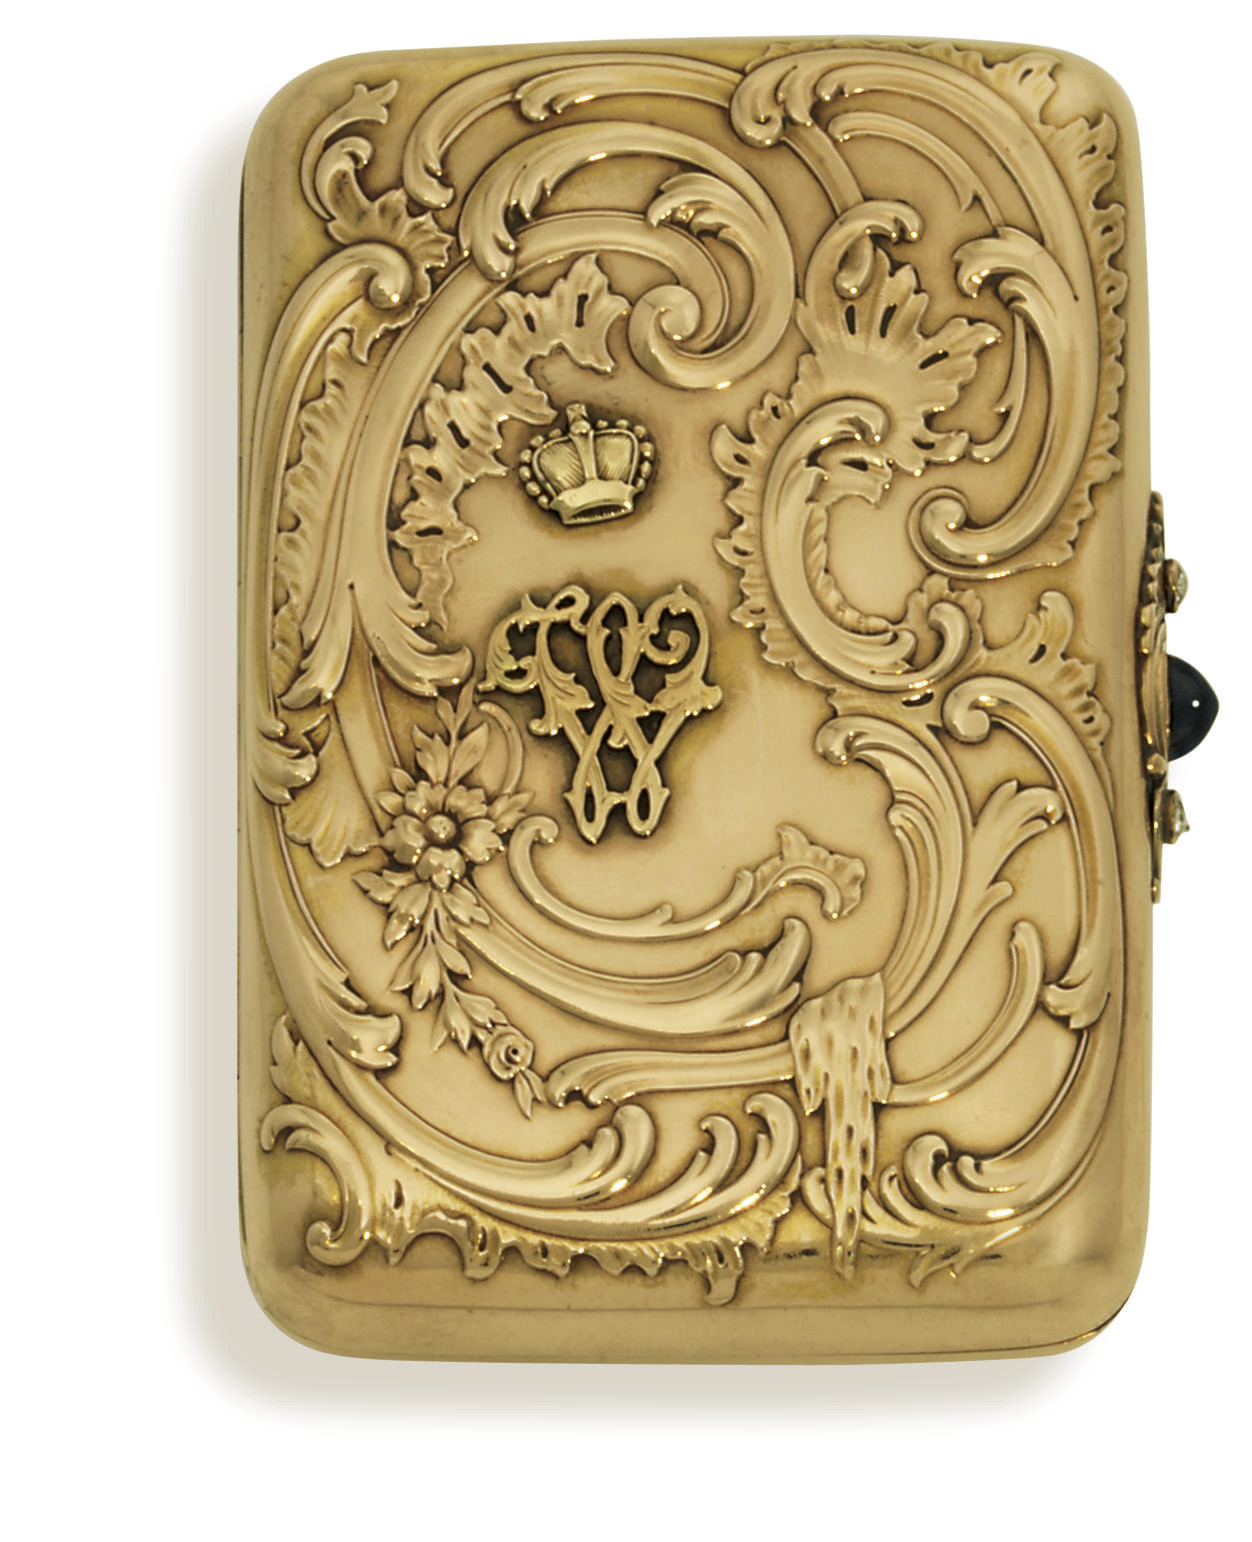 A jewelled gold cigarette-case